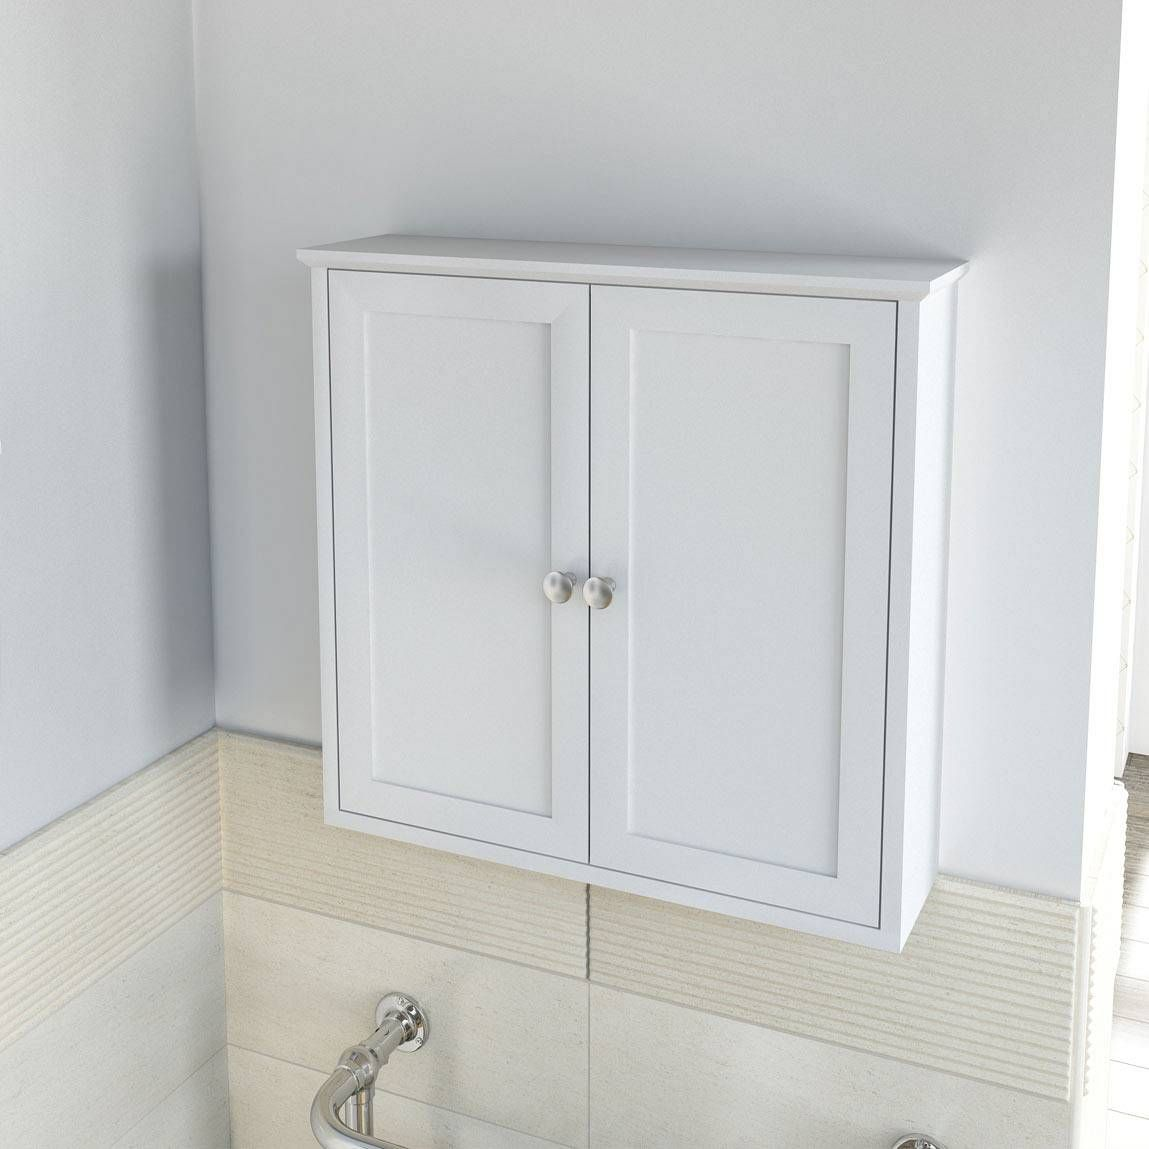 Camberley white wall mounted cabinet 60 also in sage - Wall mounted bathroom storage units ...